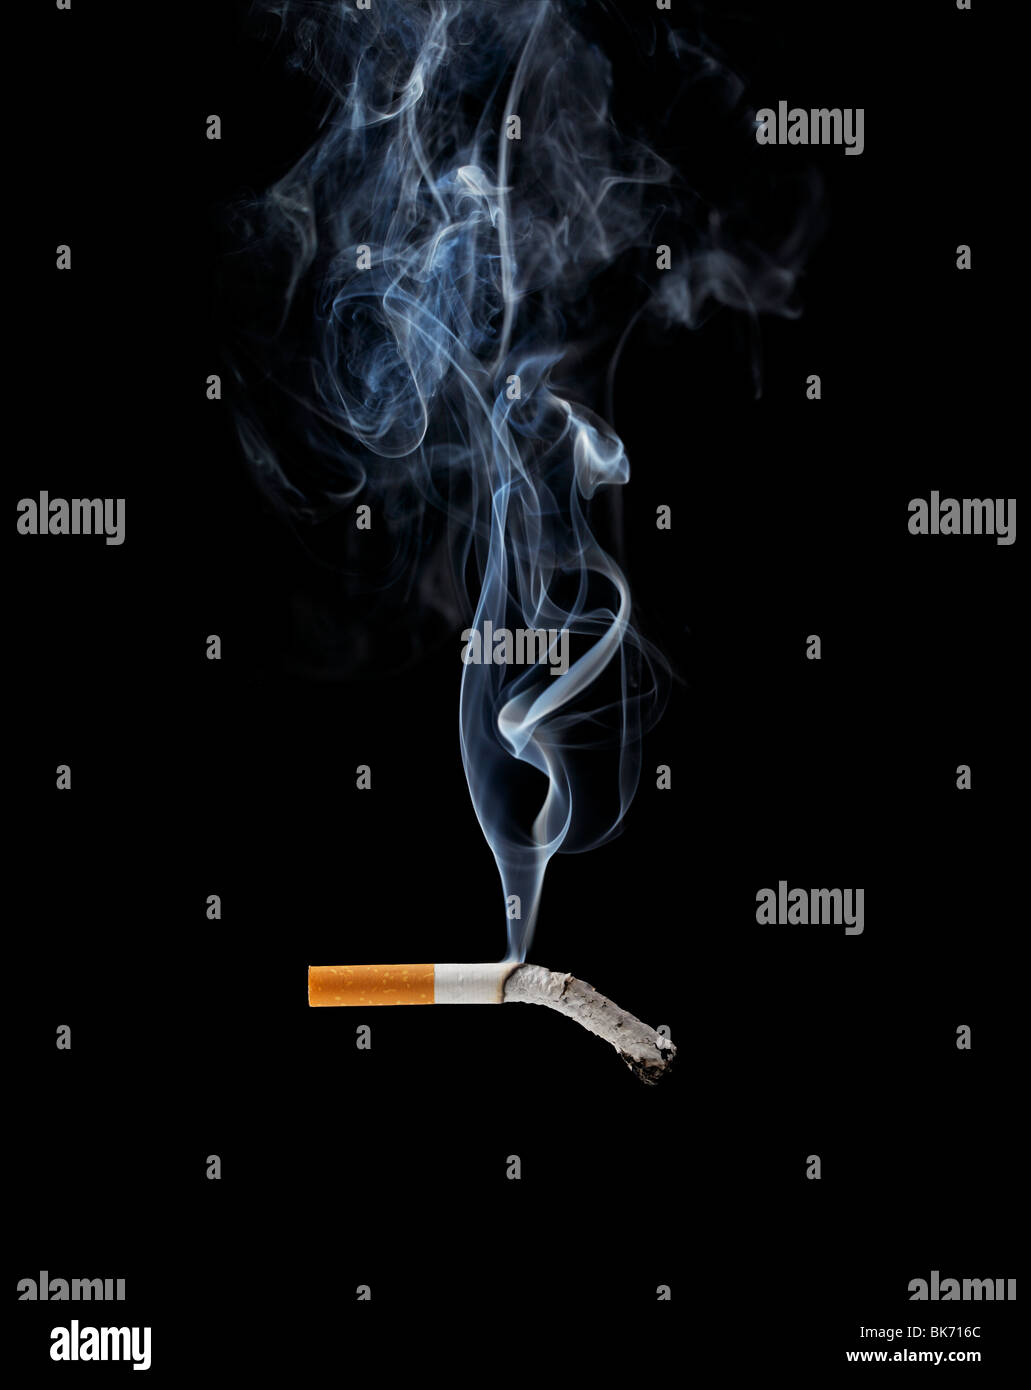 A Smoking cigarette on black background - Stock Image